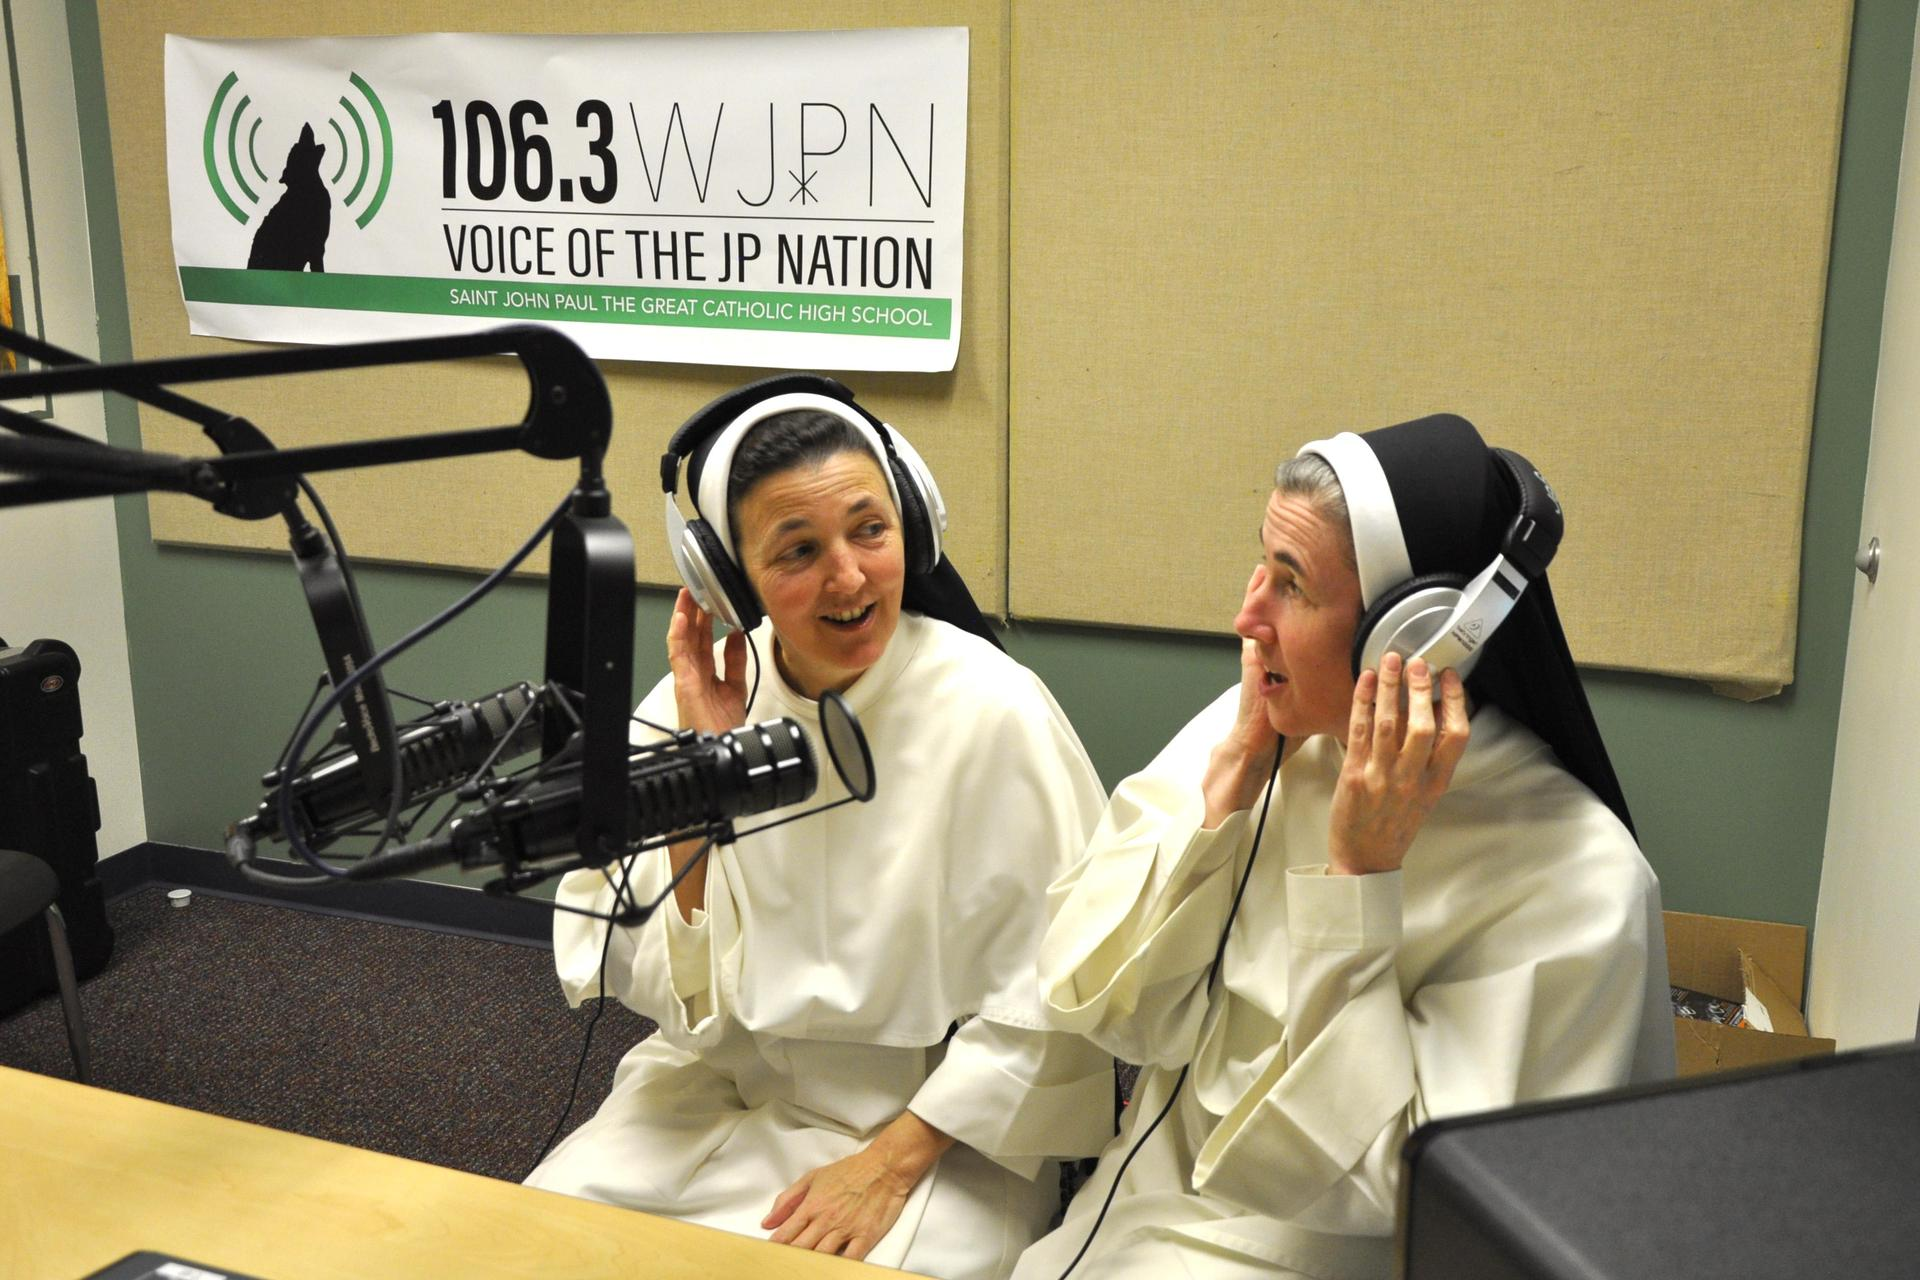 Two Sister broadcast on the radio